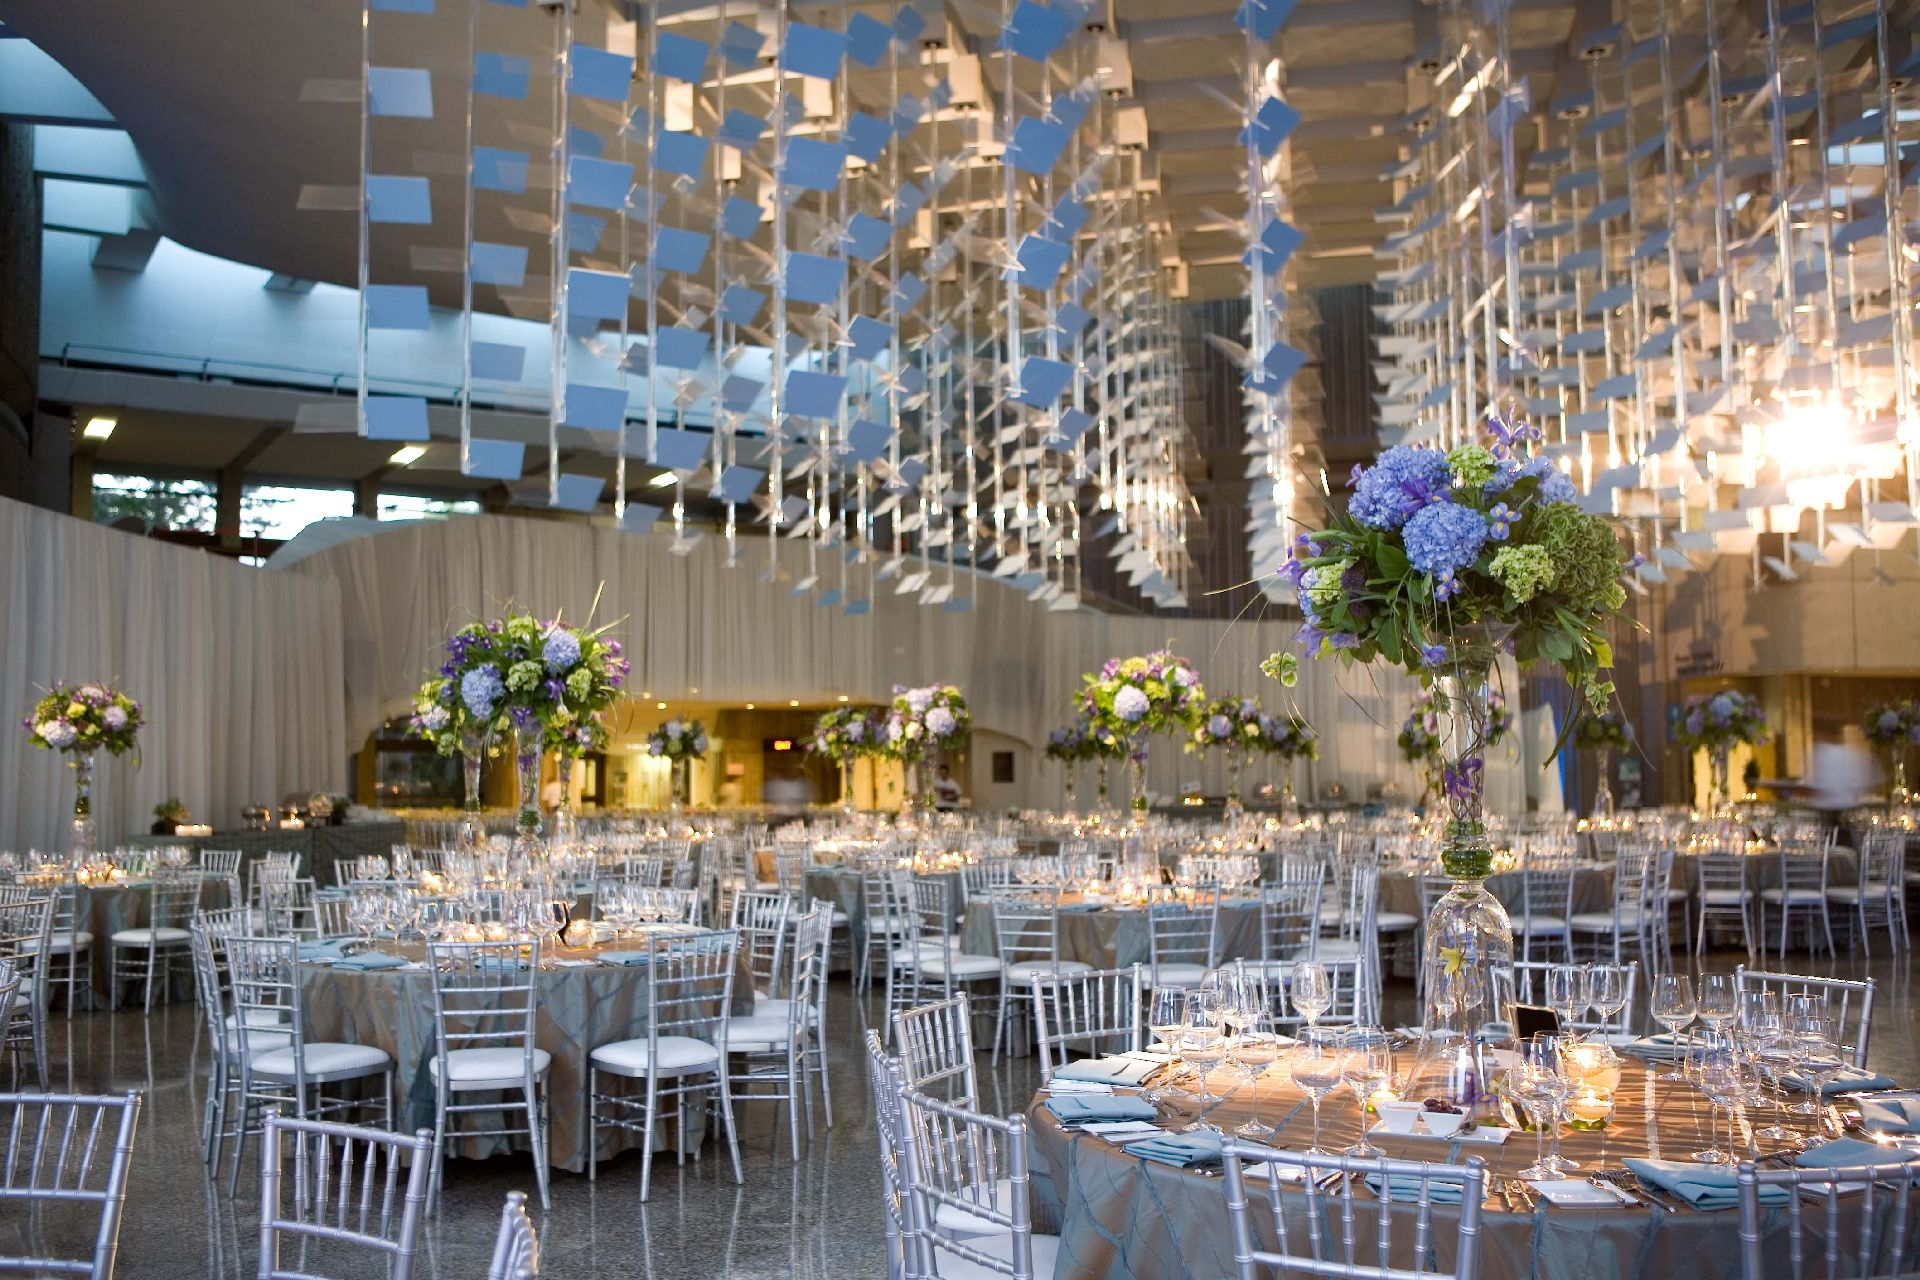 Wedding Venues What You Need For A Large Wedding: 5 Unique Wedding Venues You Need To See For Yourself